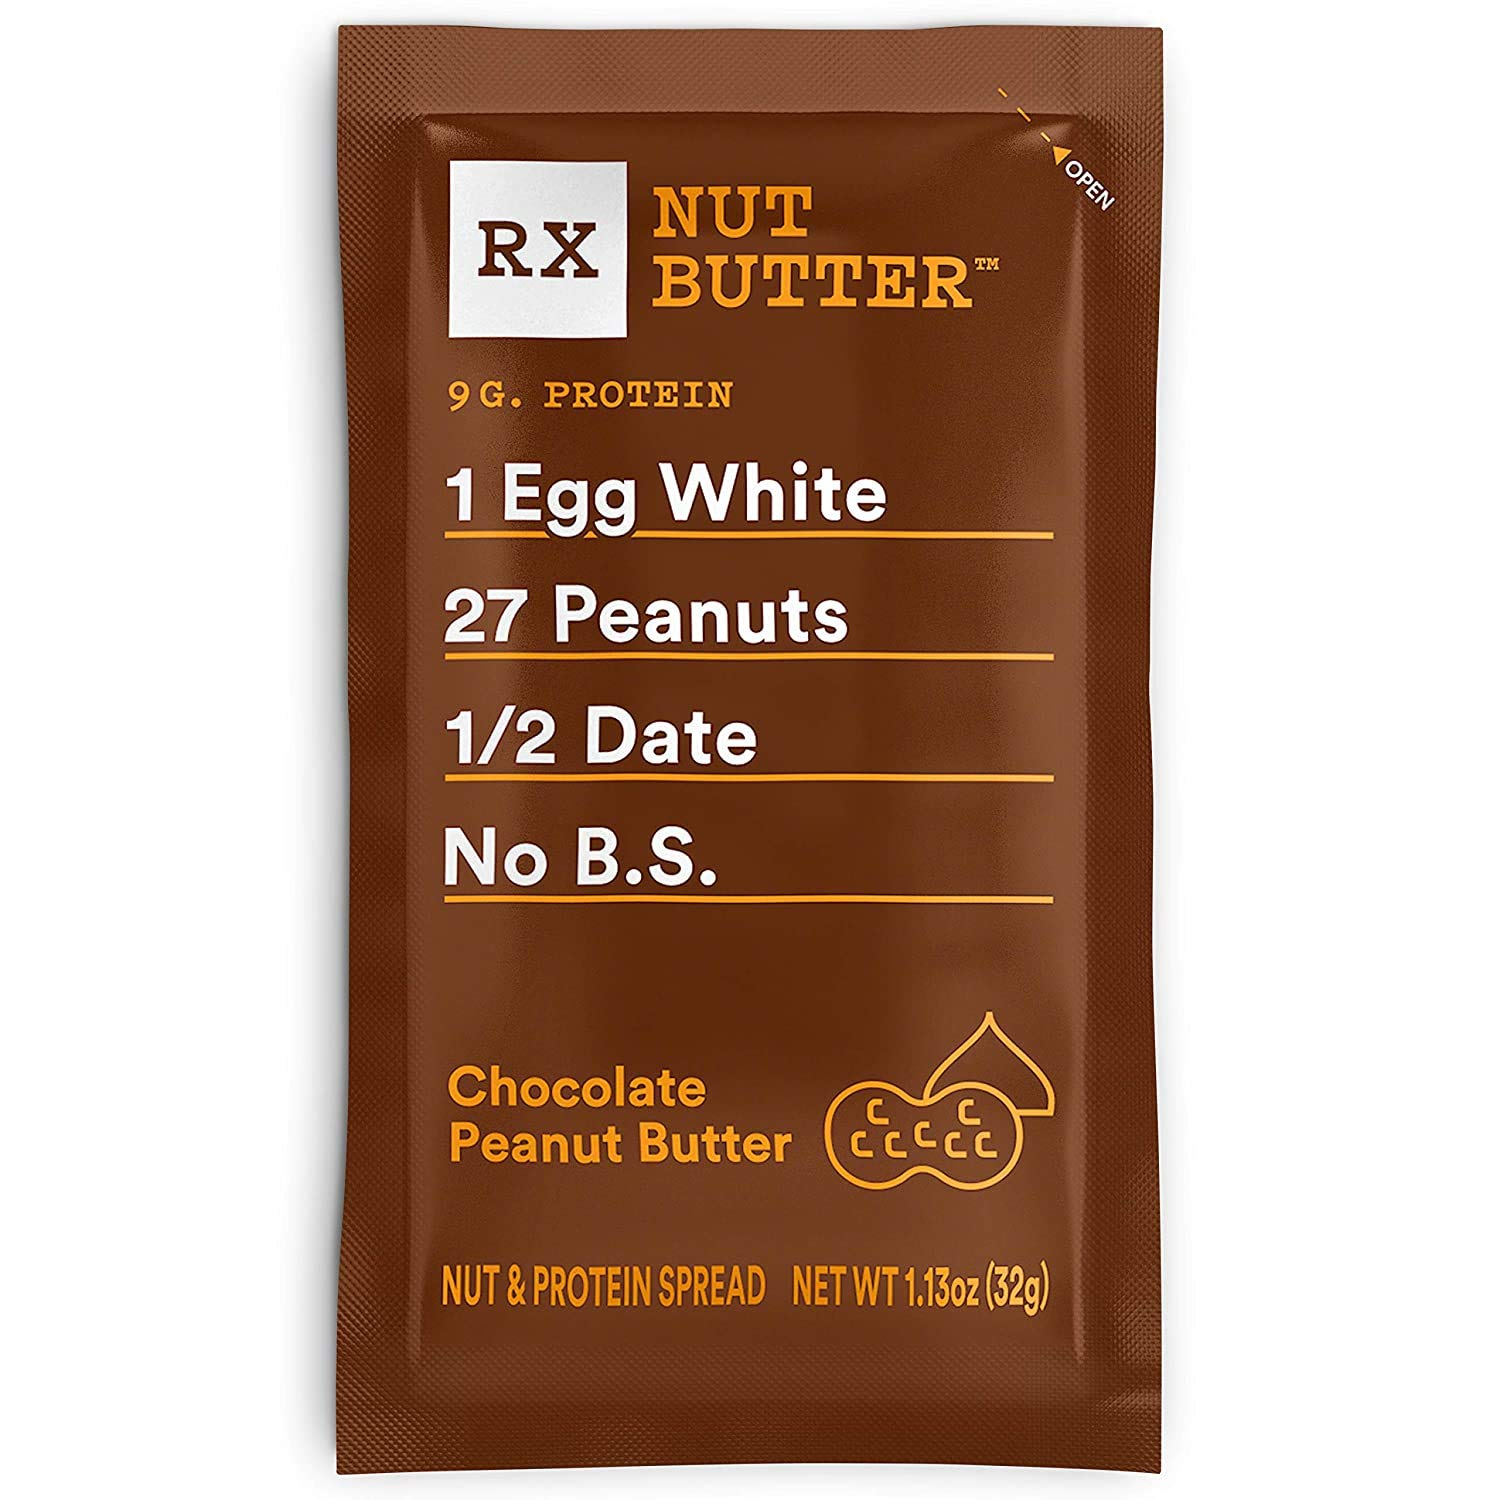 RX Nut Butter, Chocolate Peanut Butter, 10 Count, Keto Snack, Gluten Free